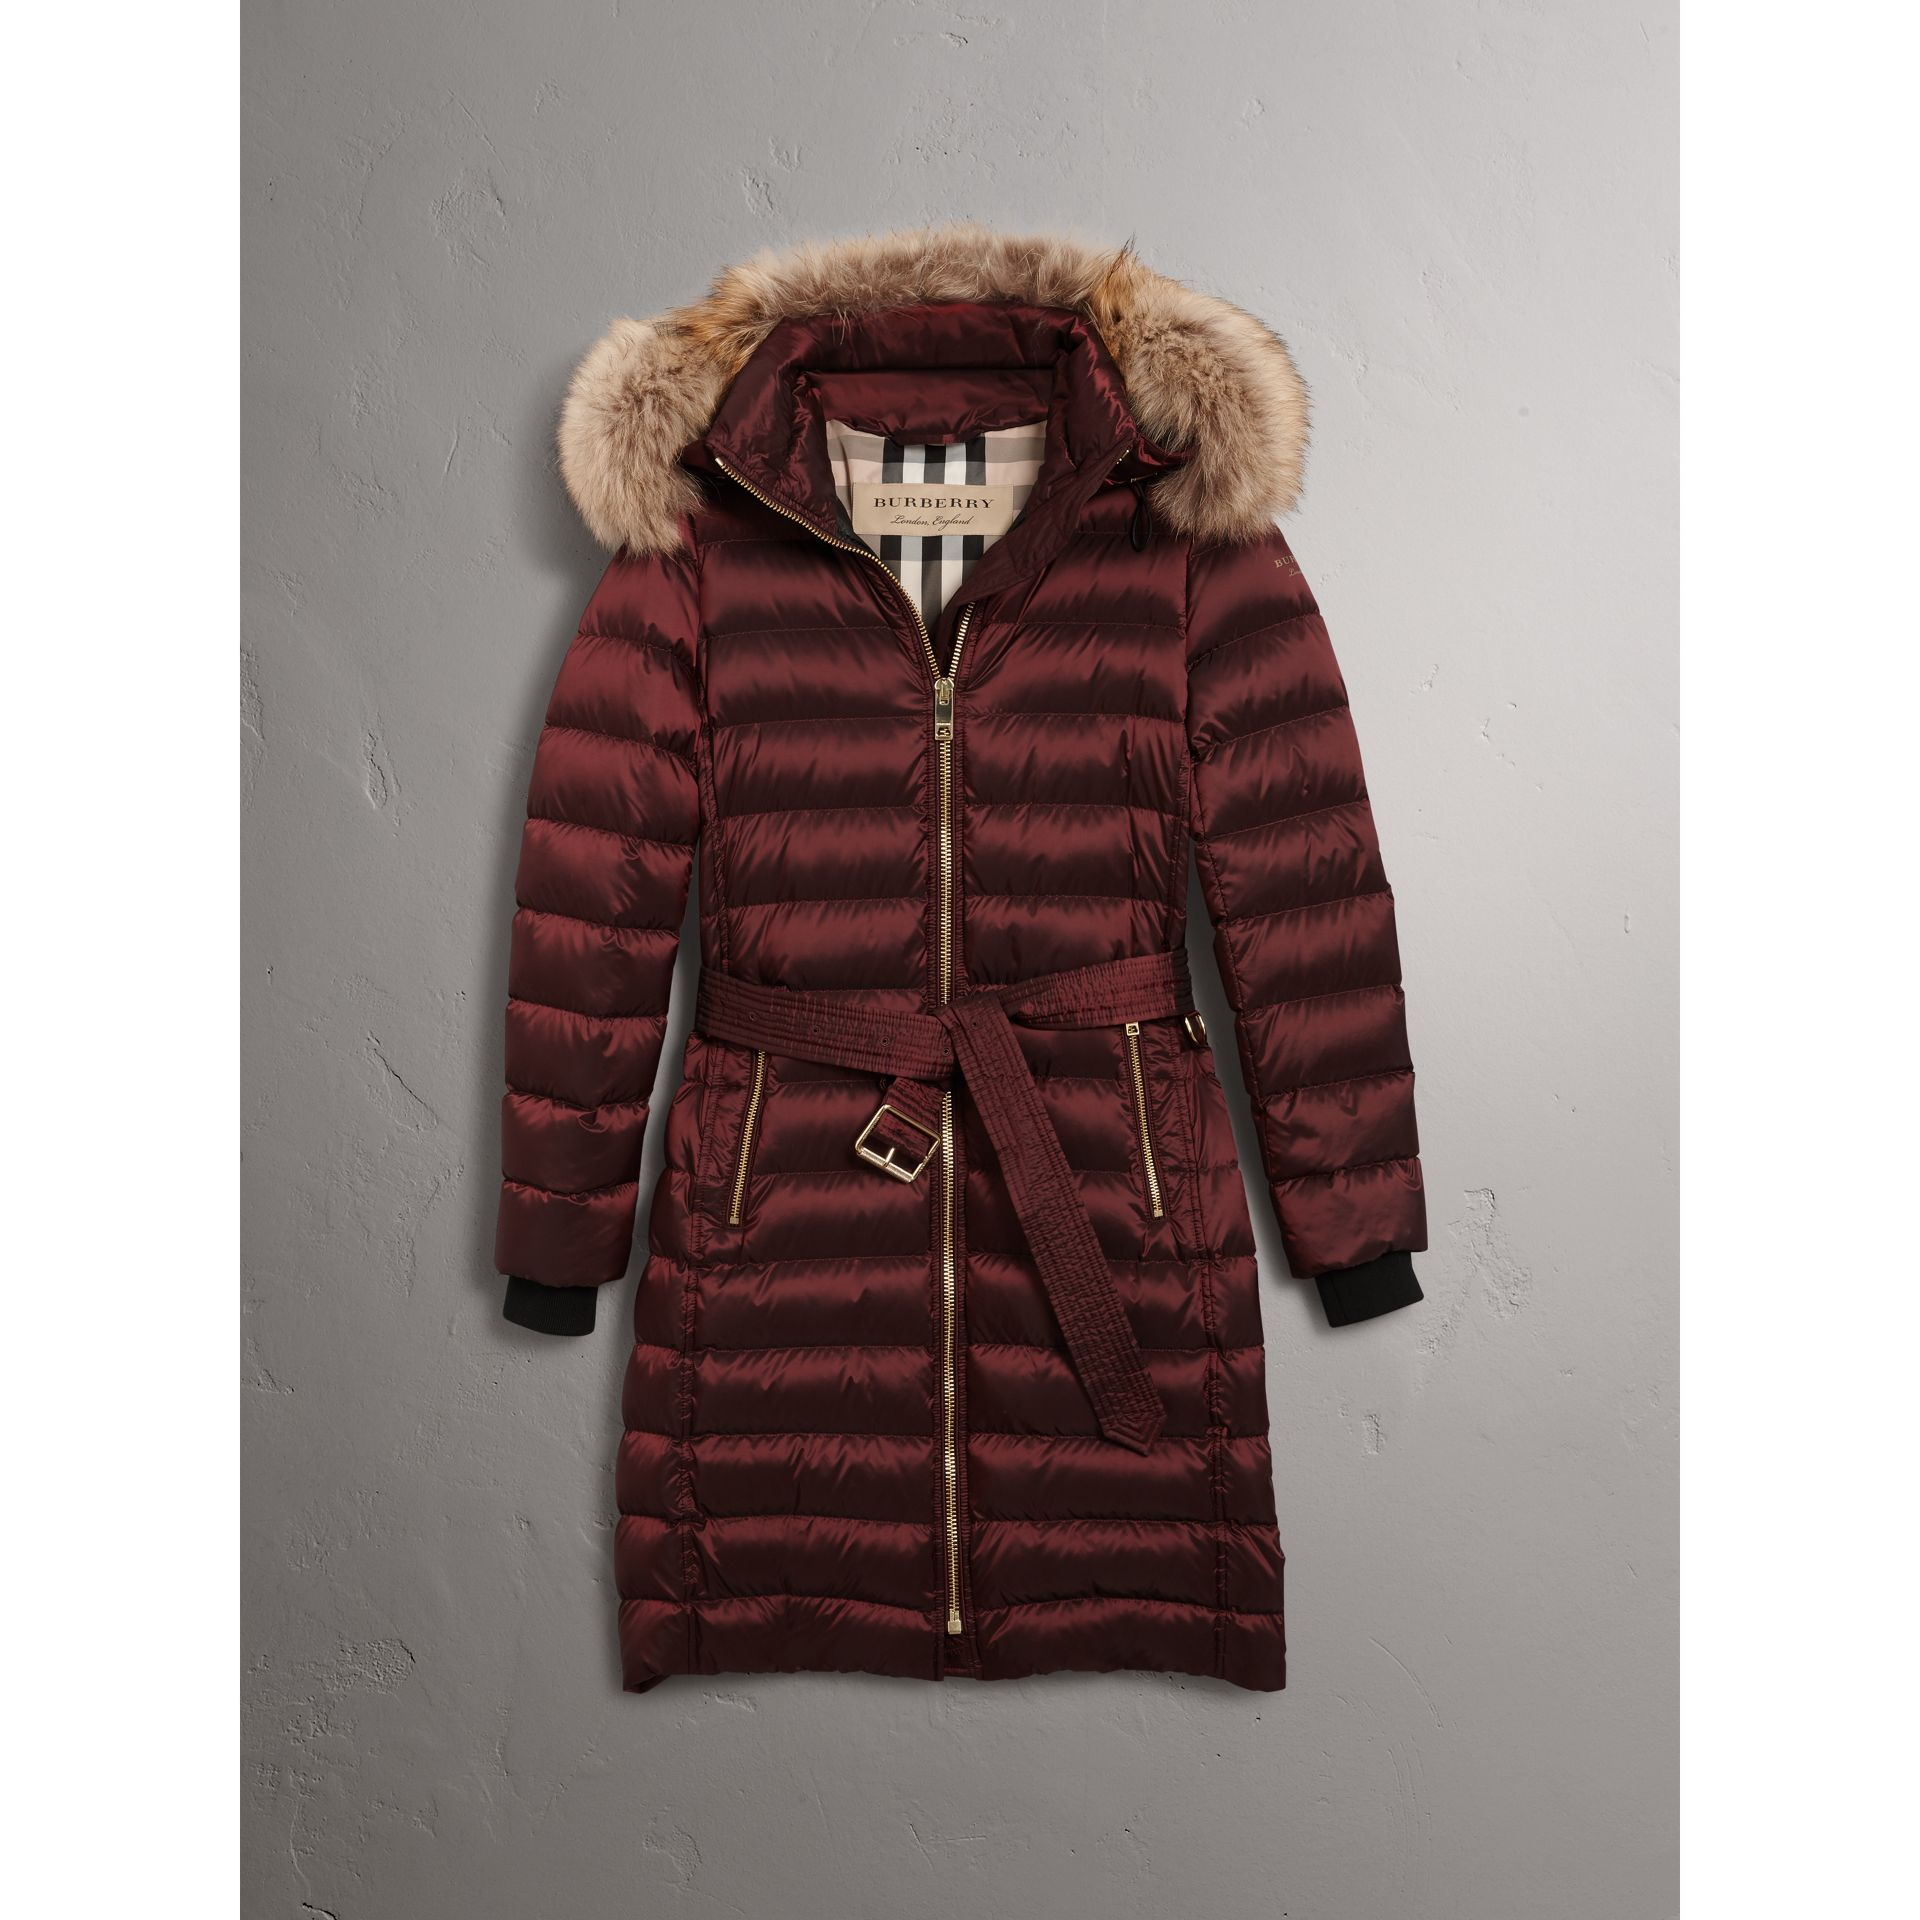 Detachable Fur Trim Down-filled Puffer Coat with Hood in Burgundy - Women | Burberry Australia - gallery image 3